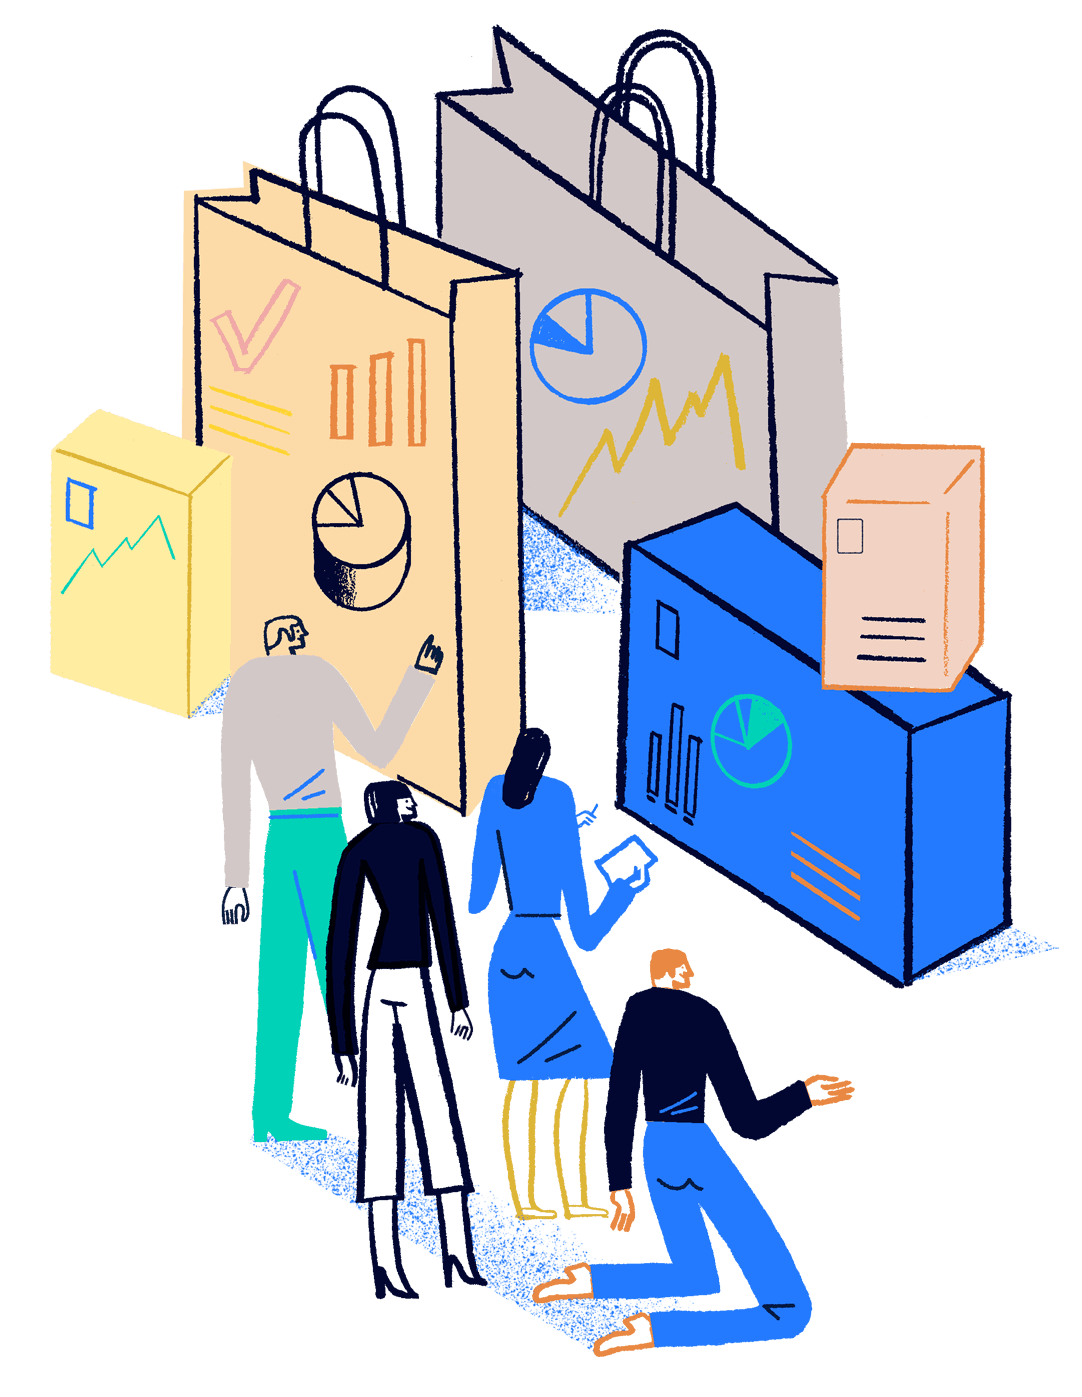 illustration of 4 people looking at data and charts on large shipping boxes and shopping bags